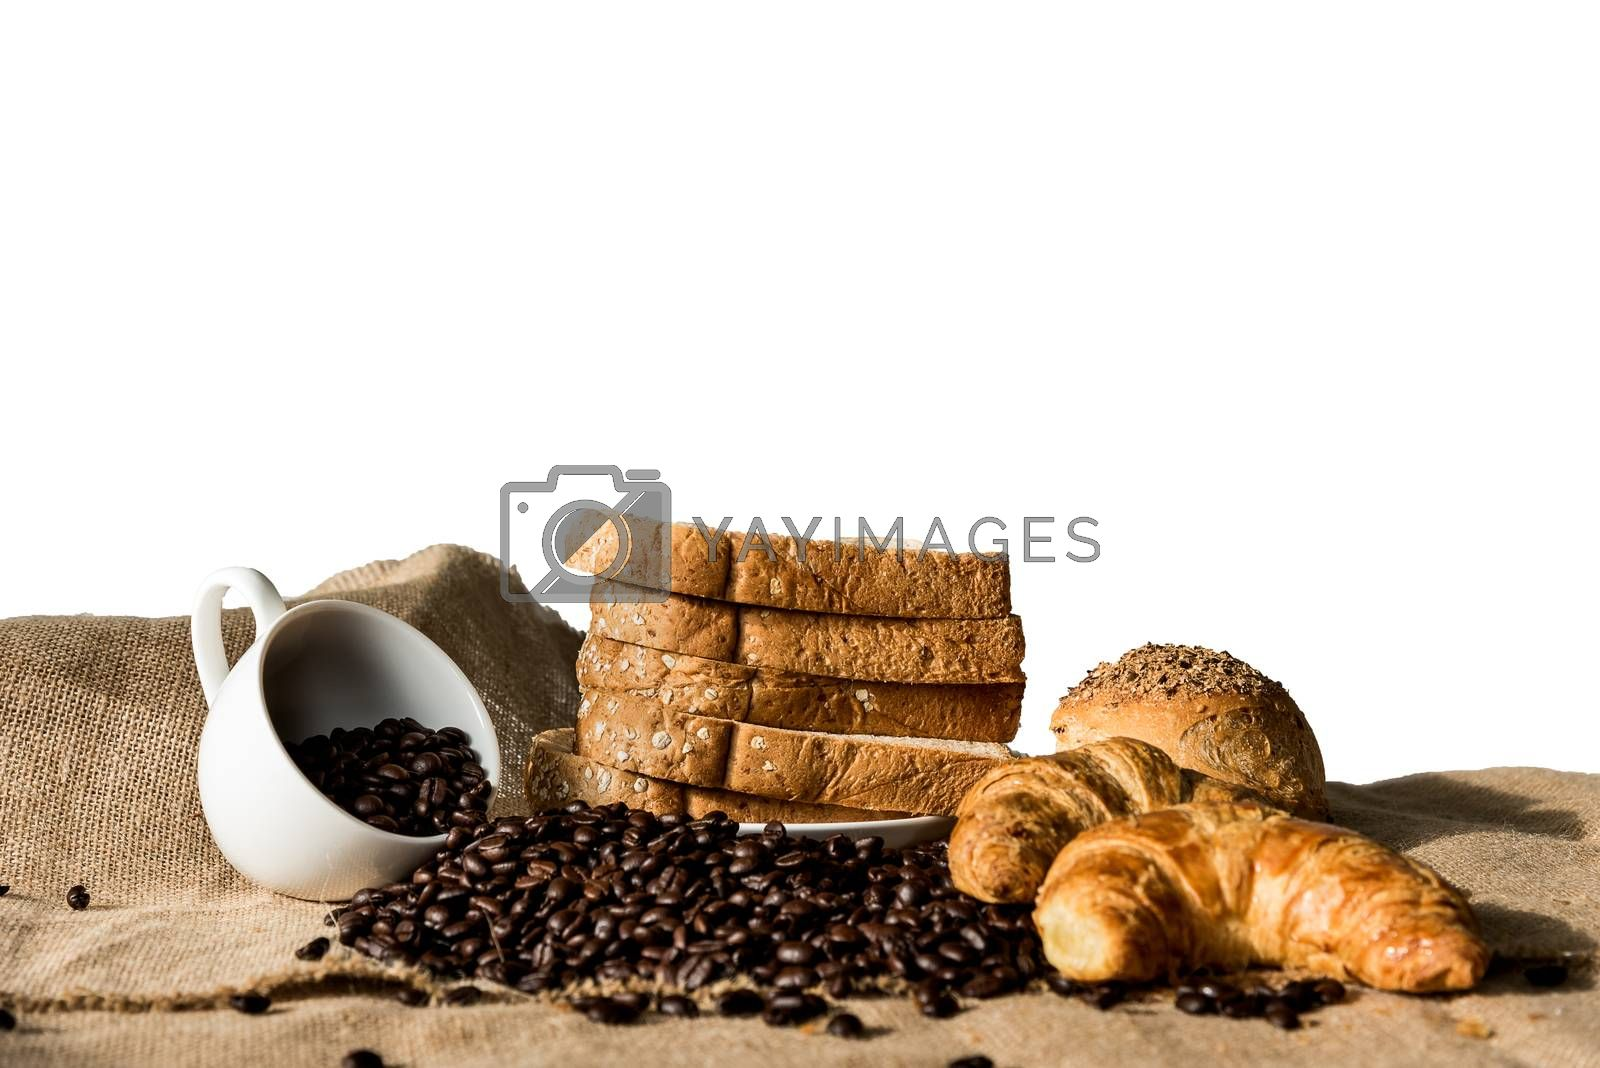 Bread and Croissant on the sackcloth with empty coffee cup and c by animagesdesign